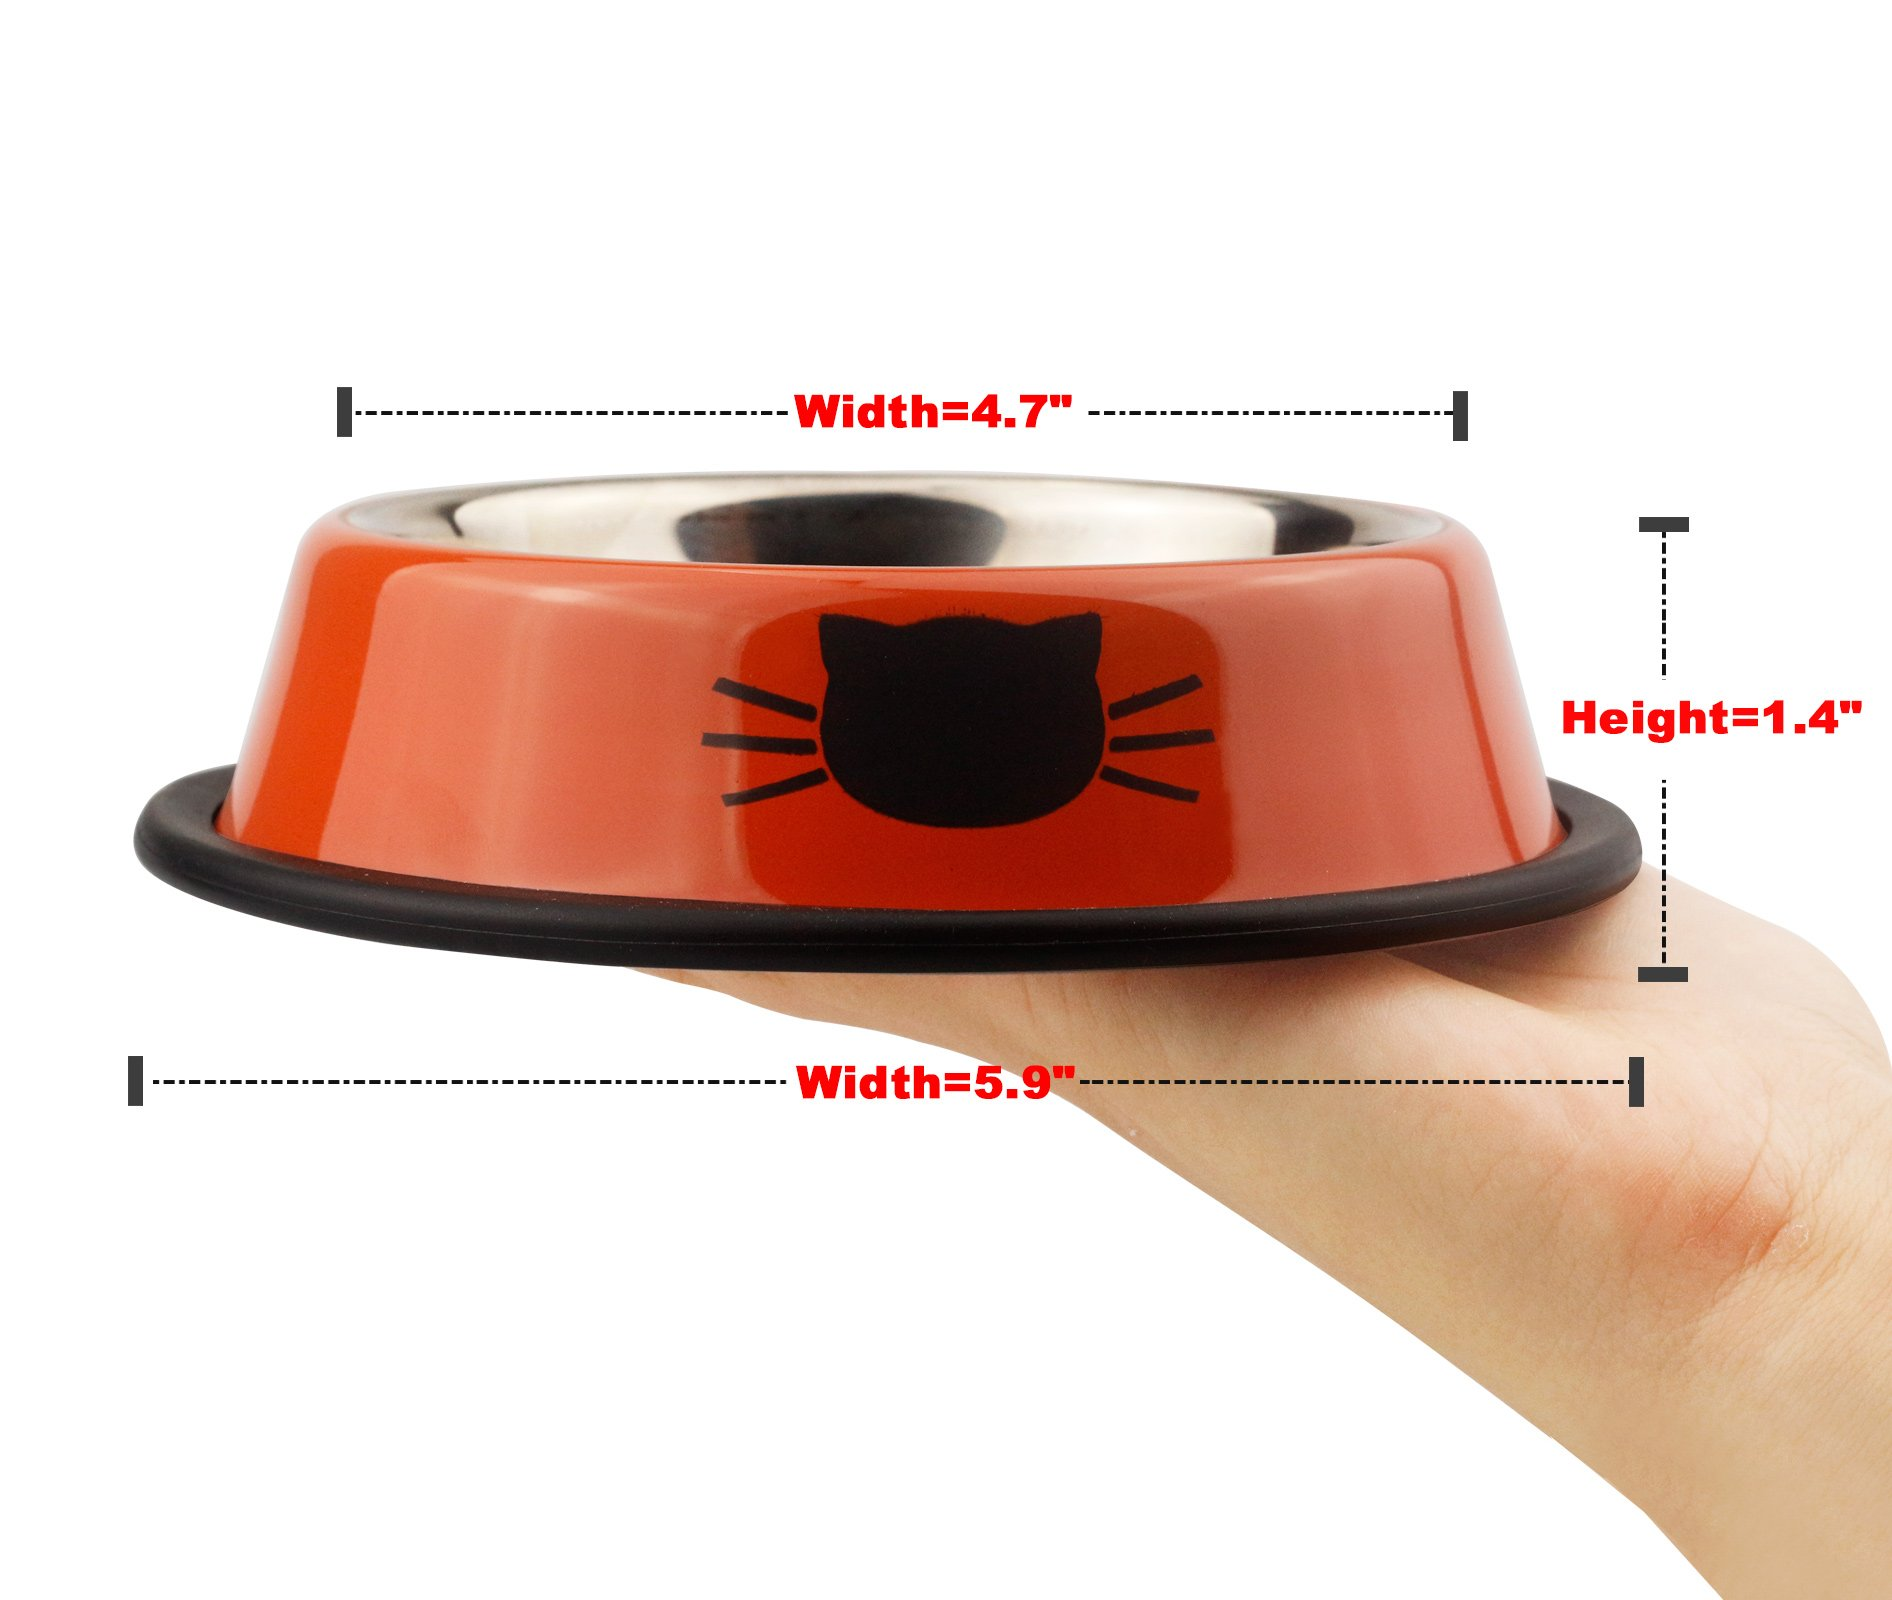 Ureverbasic Cat Bowls Stainless Steel Dog Bowl 8oz for Small Pets Puppy Kitten Rabbit Non-Skid Cat Food Bowls Easy to Clean Durable Cat Dish for Food and Water by Ureverbasic (Image #5)